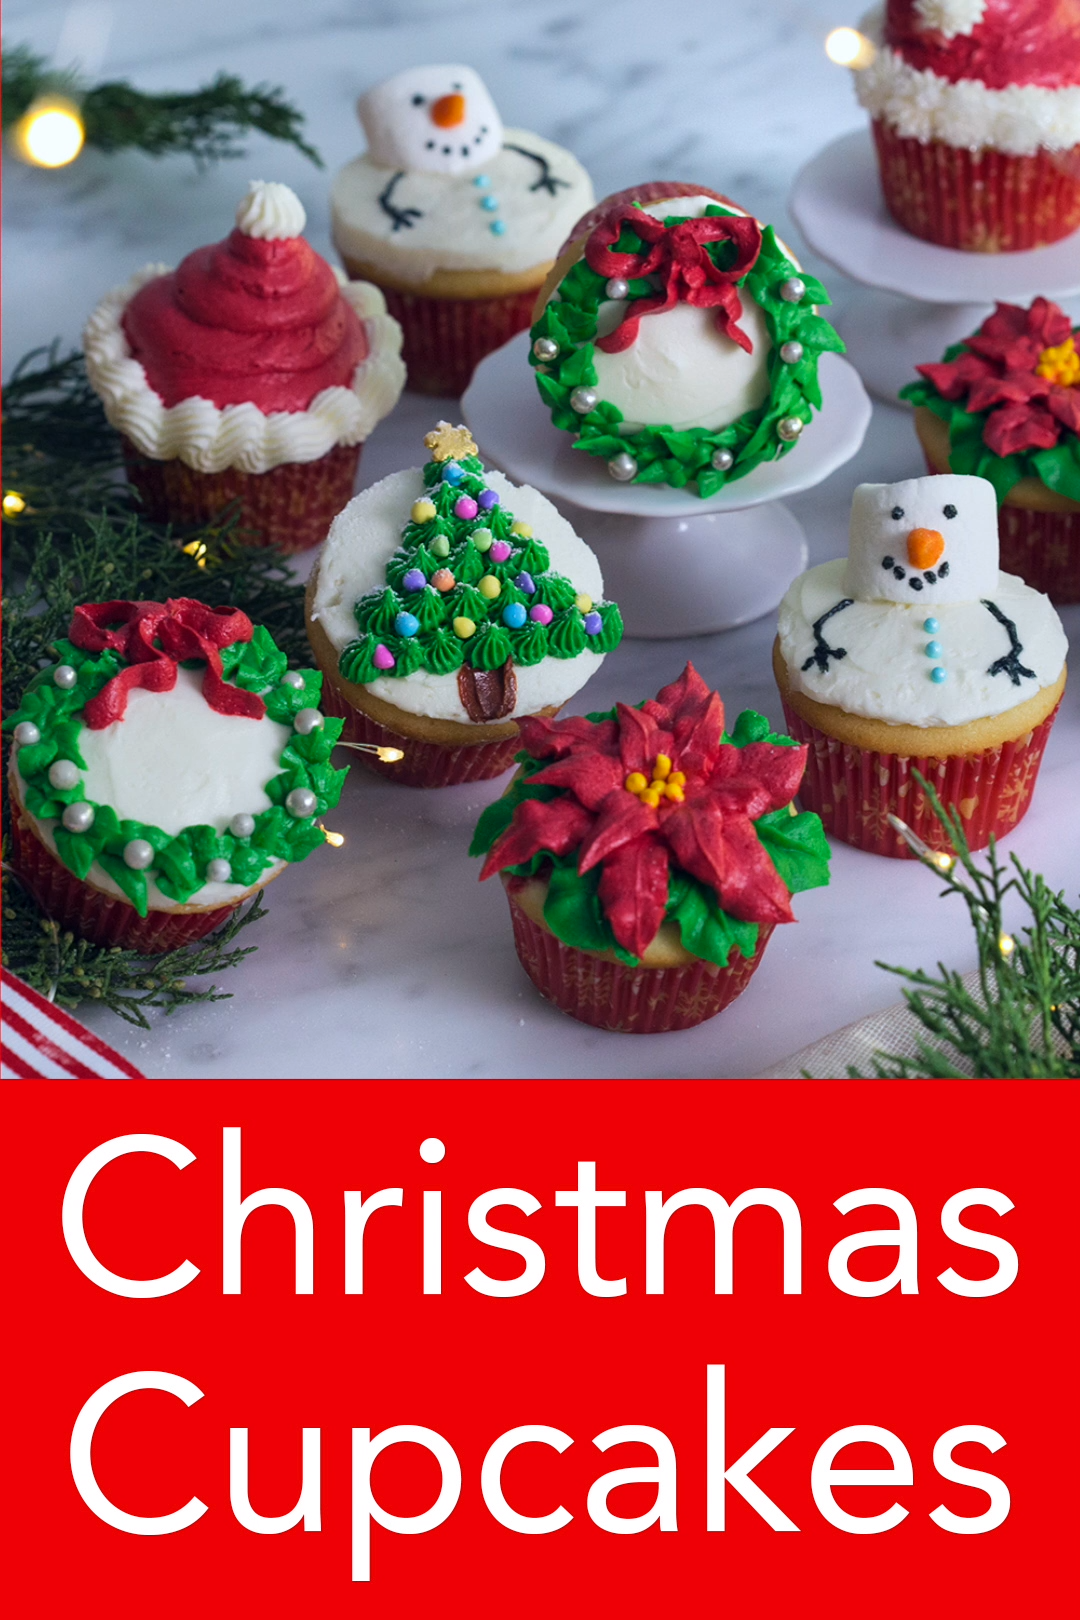 These festive Christmas cupcakes decorated five different ways from Preppy Kitchen are too cute not to make for your next holiday gathering! Moist and fluffy vanilla cupcakes topped with vanilla buttercream, this recipe will become a year-round favorite!! #christmascupcakes #holidaycupcakes #holidaytreats